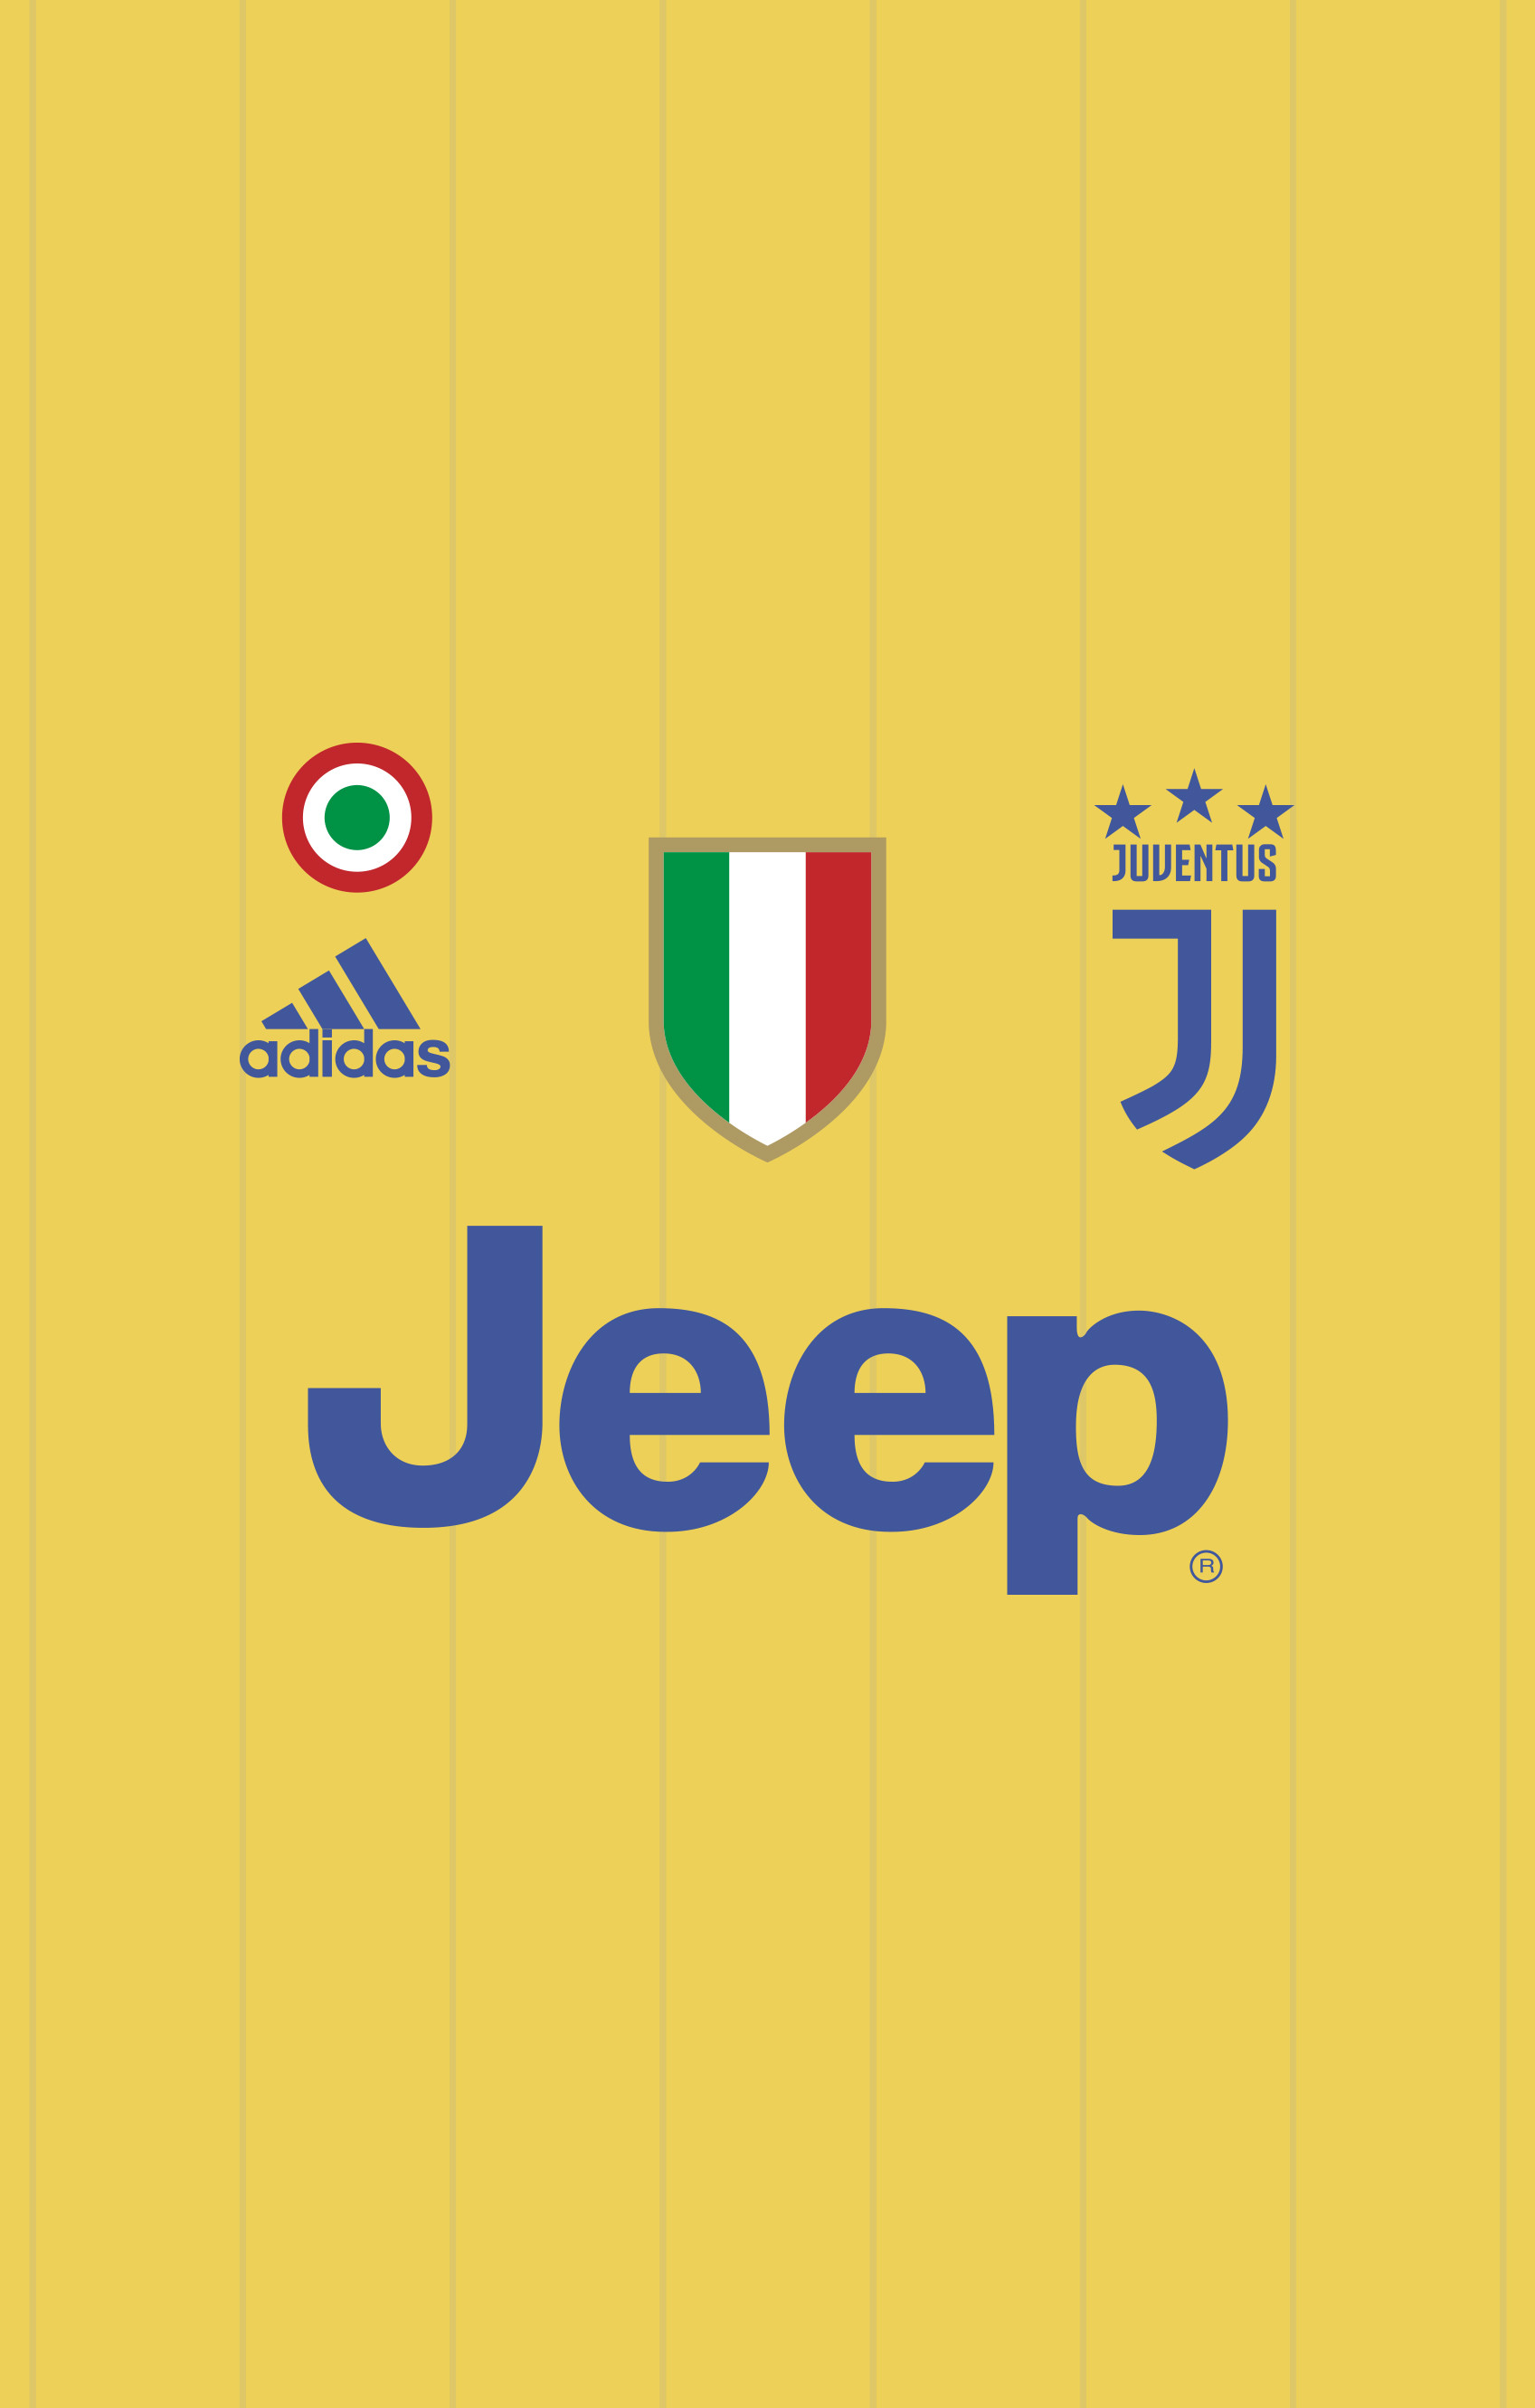 Adidas Wallpaper Iphone 6 Sfondi Juventus 75 Immagini